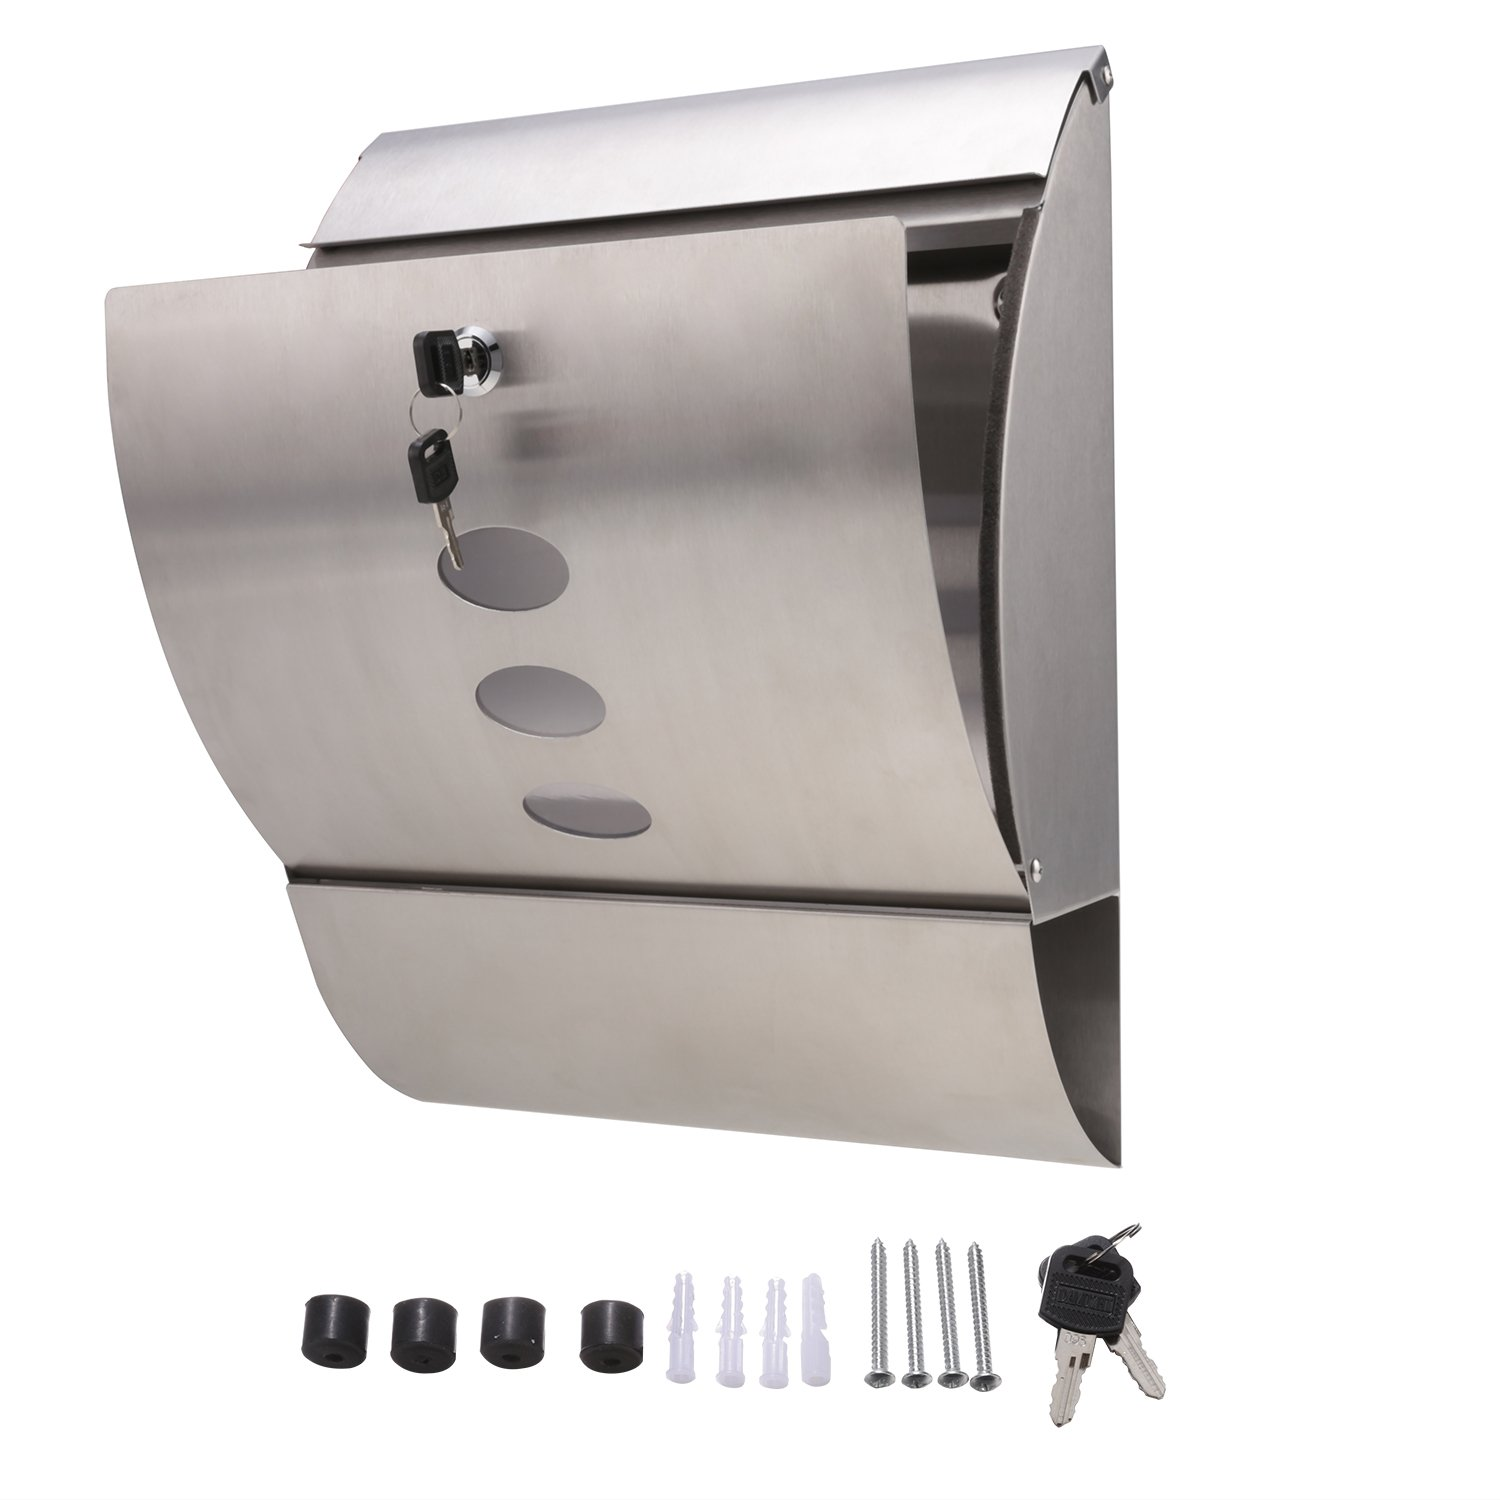 Scallop Mailbox Wall Mount Silver Powder Coated Steel with Waterproof Lid Large Outdoor Lockable//Locking Mailbox//Postbox